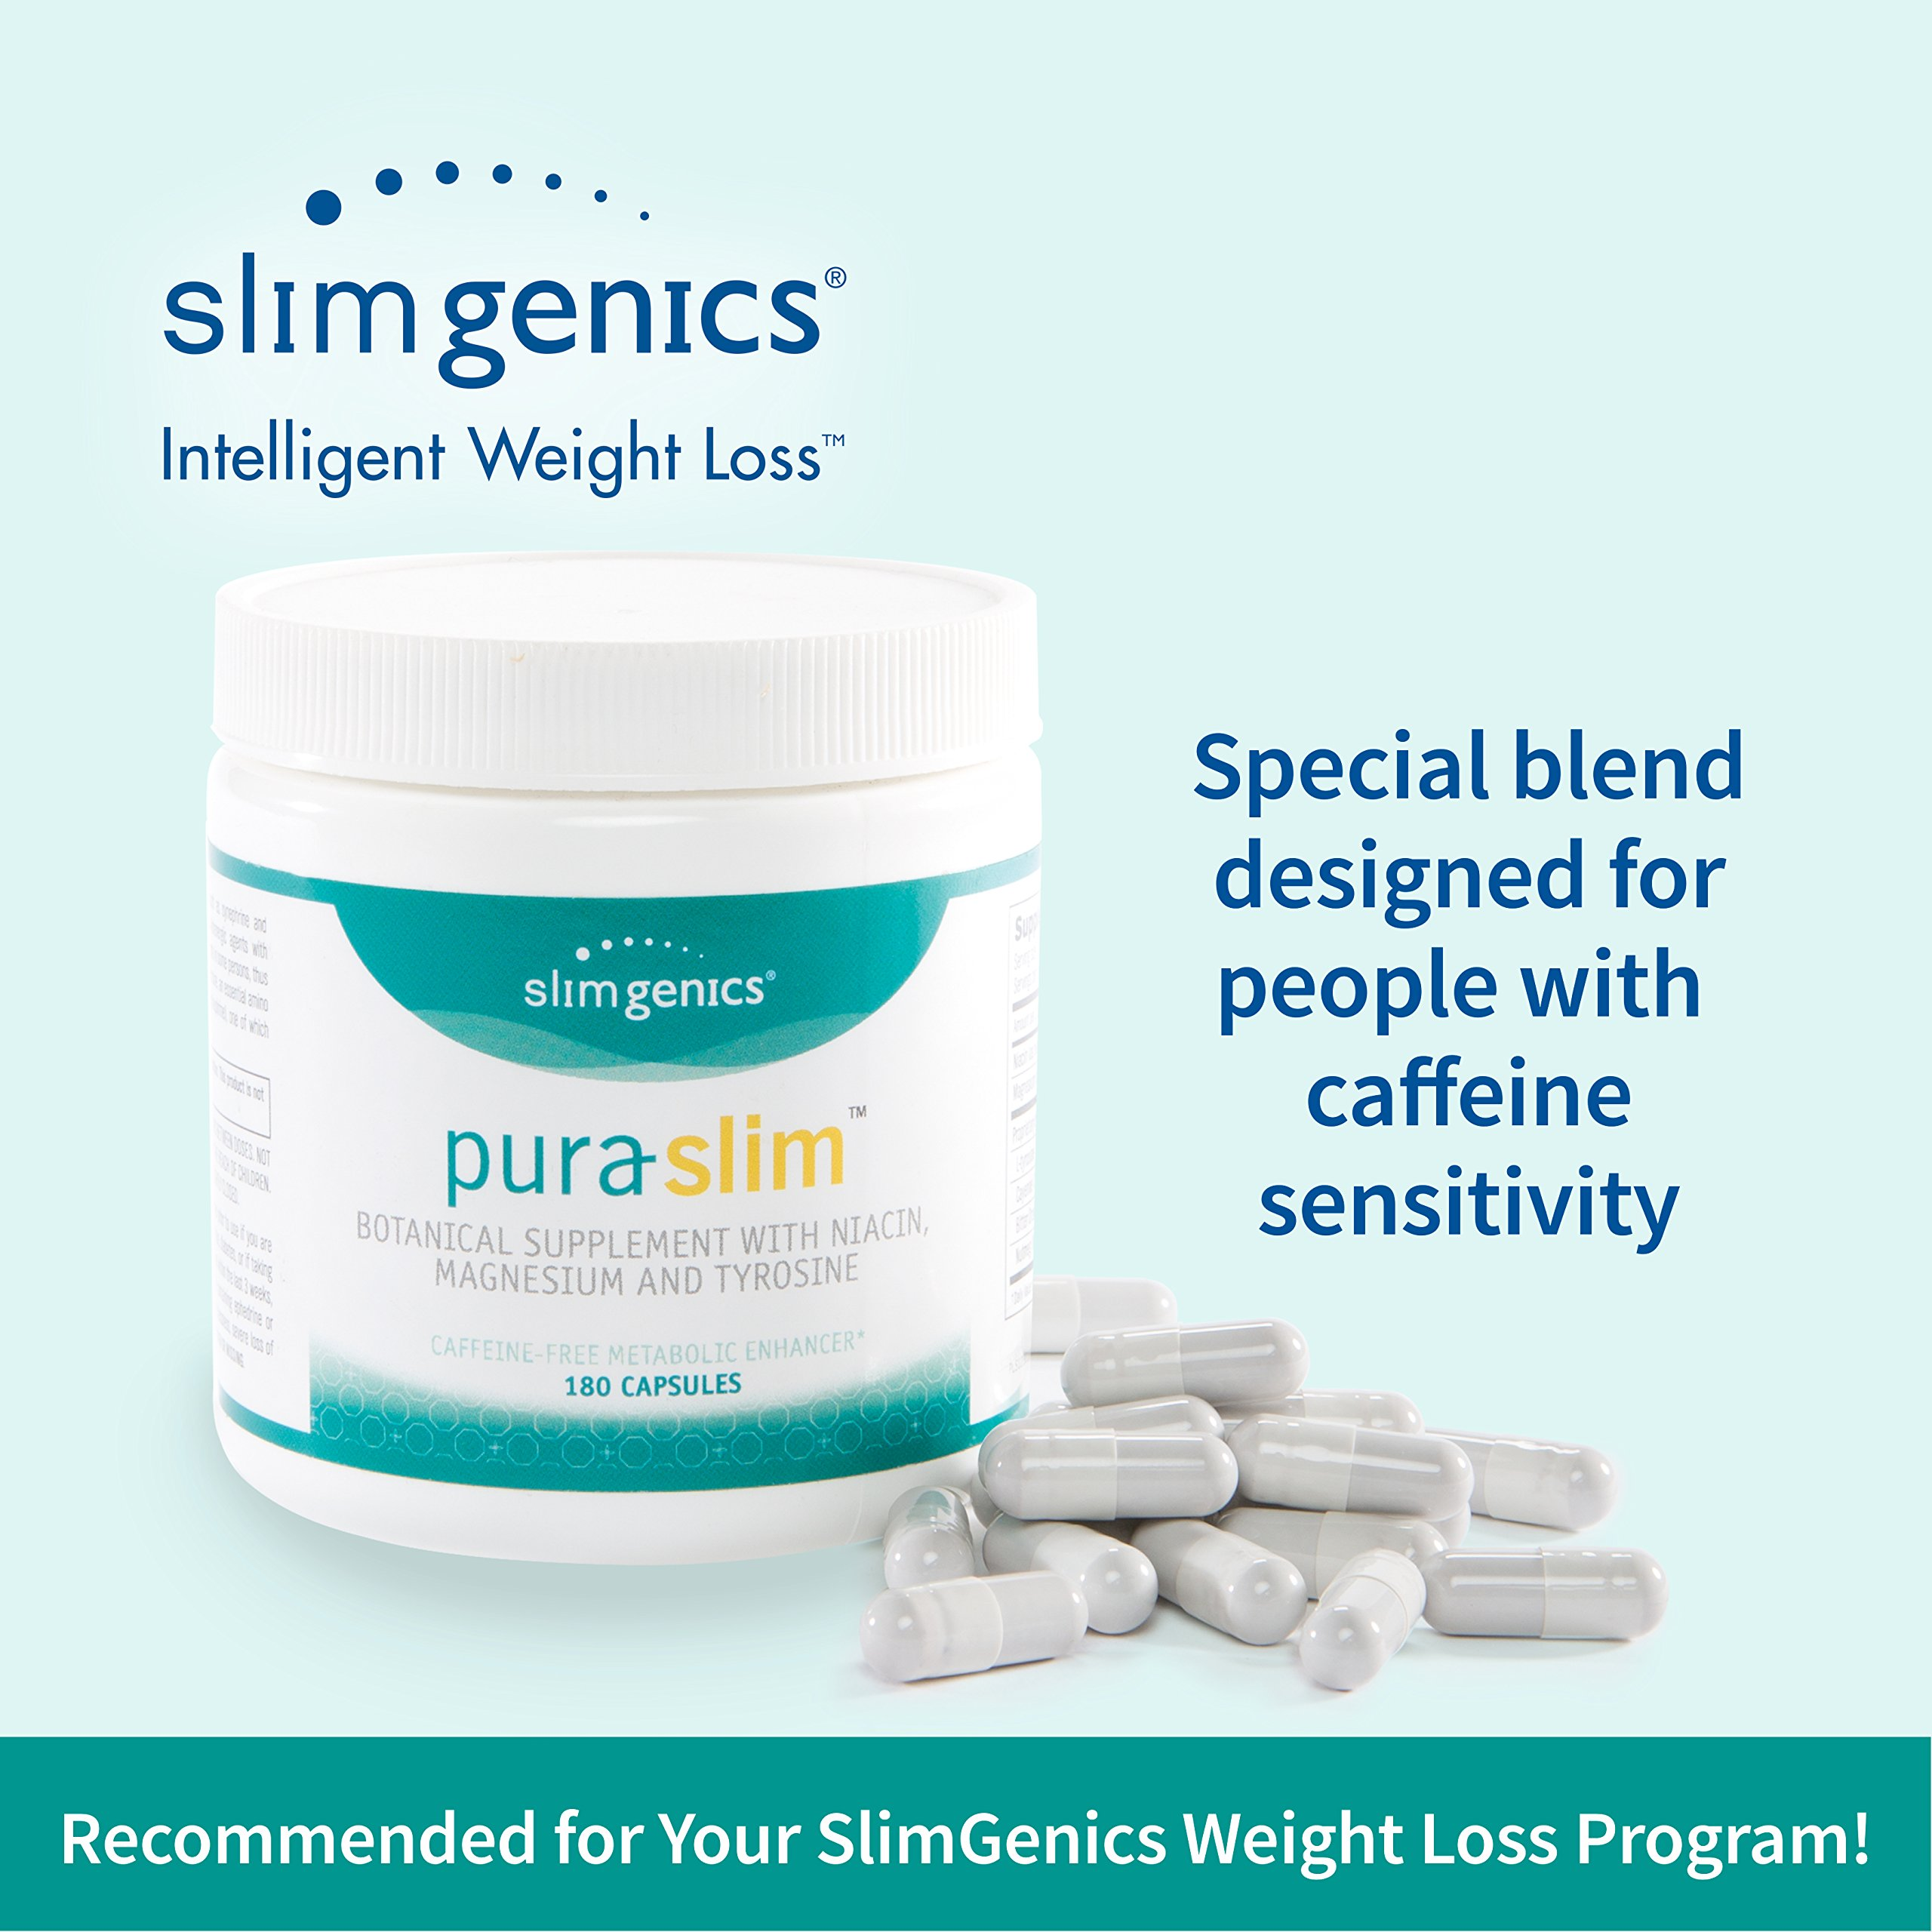 SlimGenics Pura-Slim | Metabolizer Herb – Metabolic Booster with Powerful Herbs and Nutrients, Thermogenic Fat Burners for Weight Loss, Fights Fatigue and Increases Energy (180 Count) by SlimGenics (Image #4)